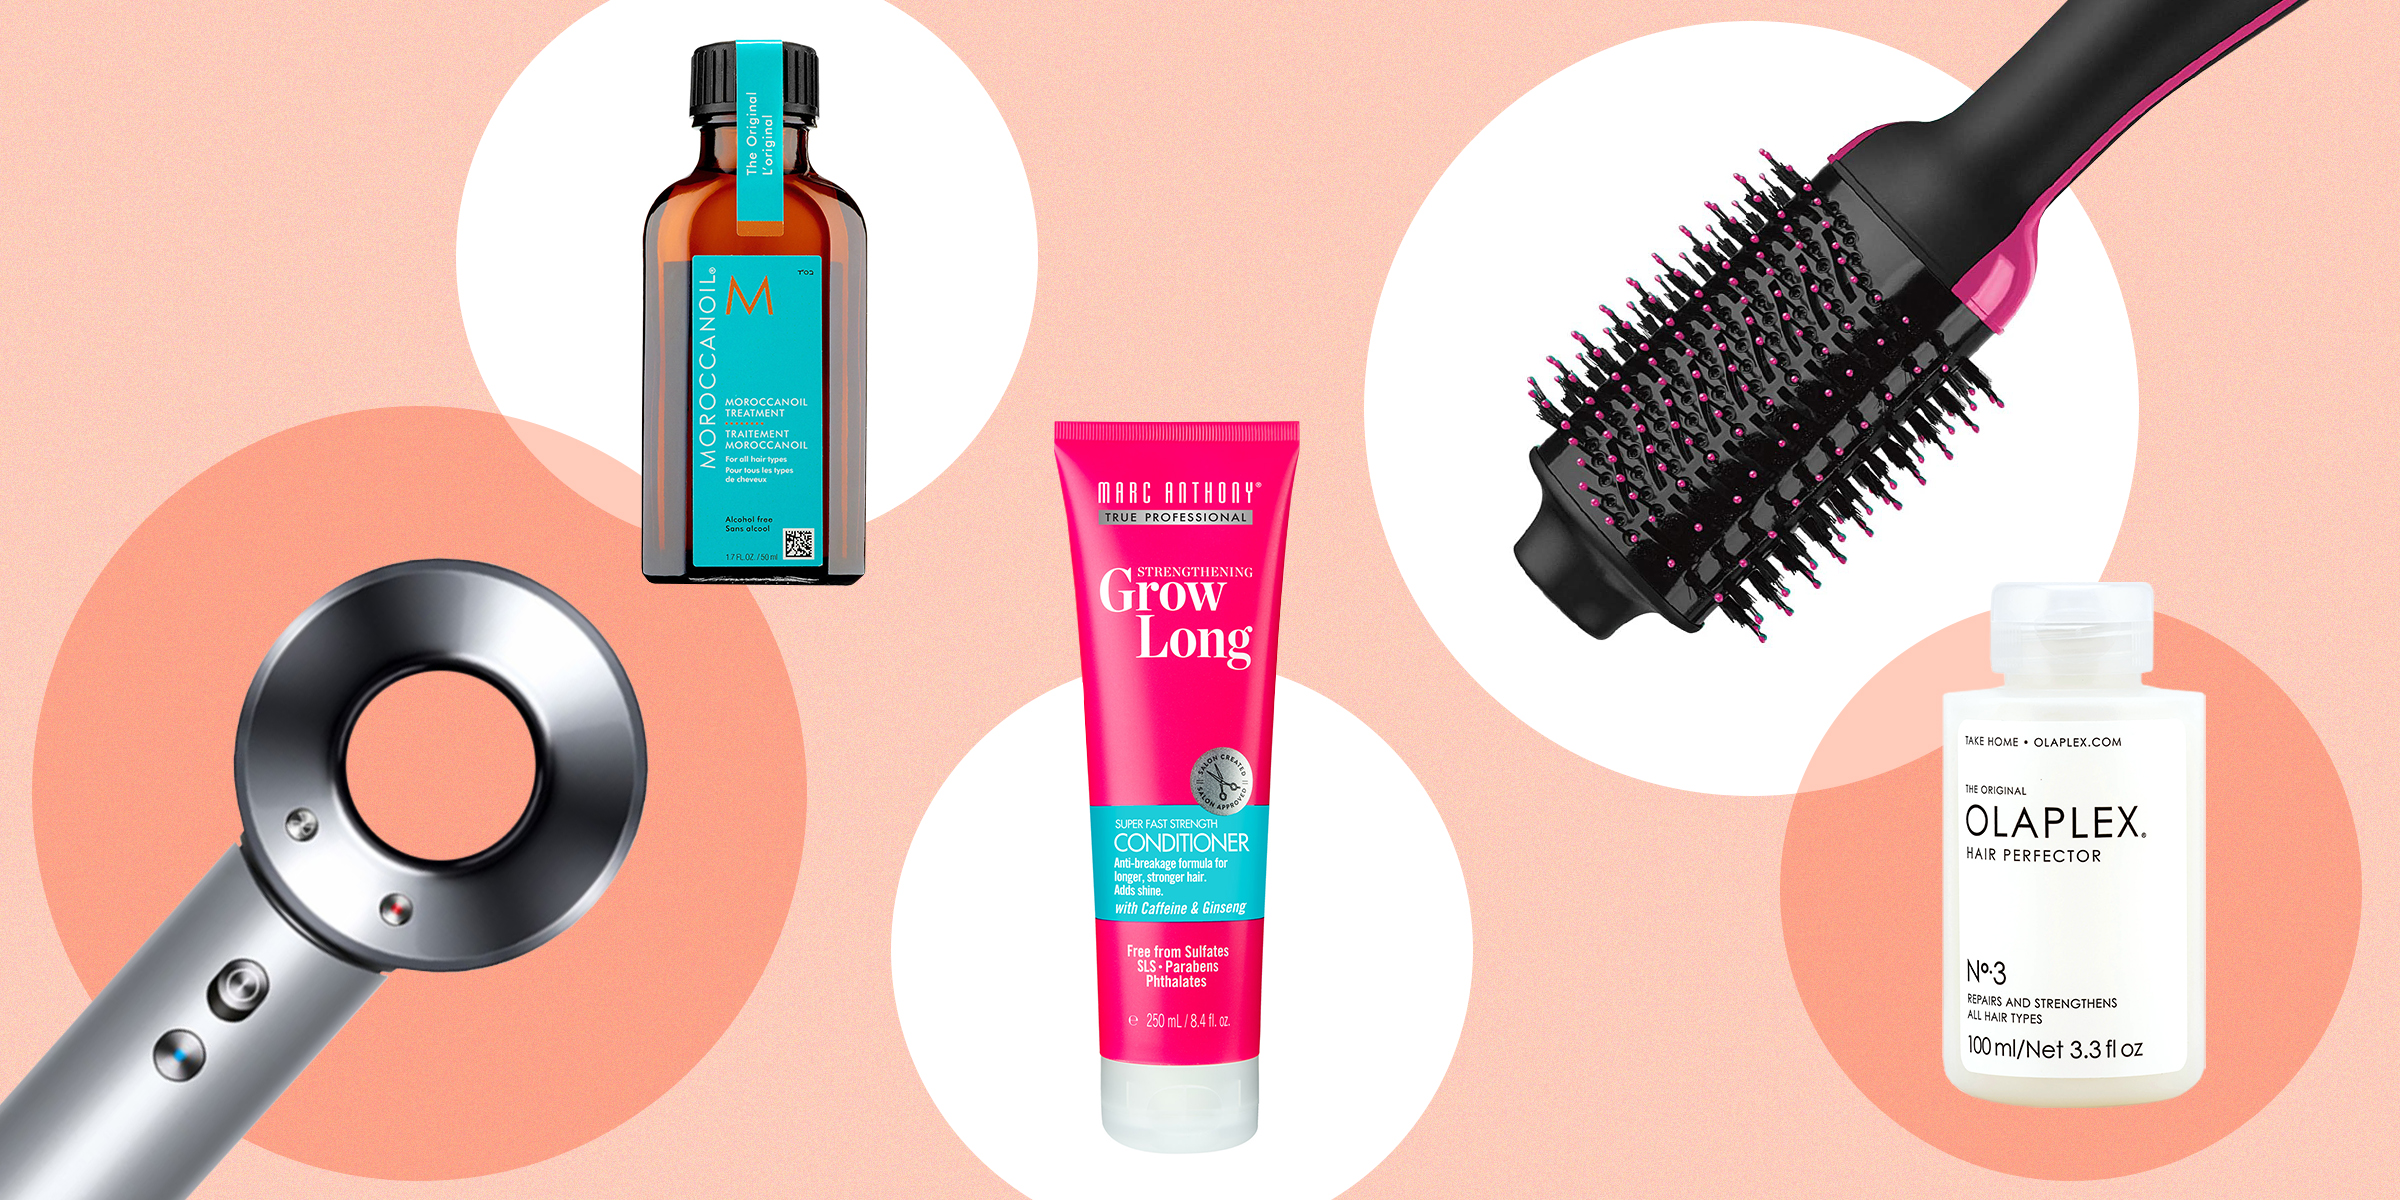 Best hair products 2020: Shop hair dye, flat irons and more